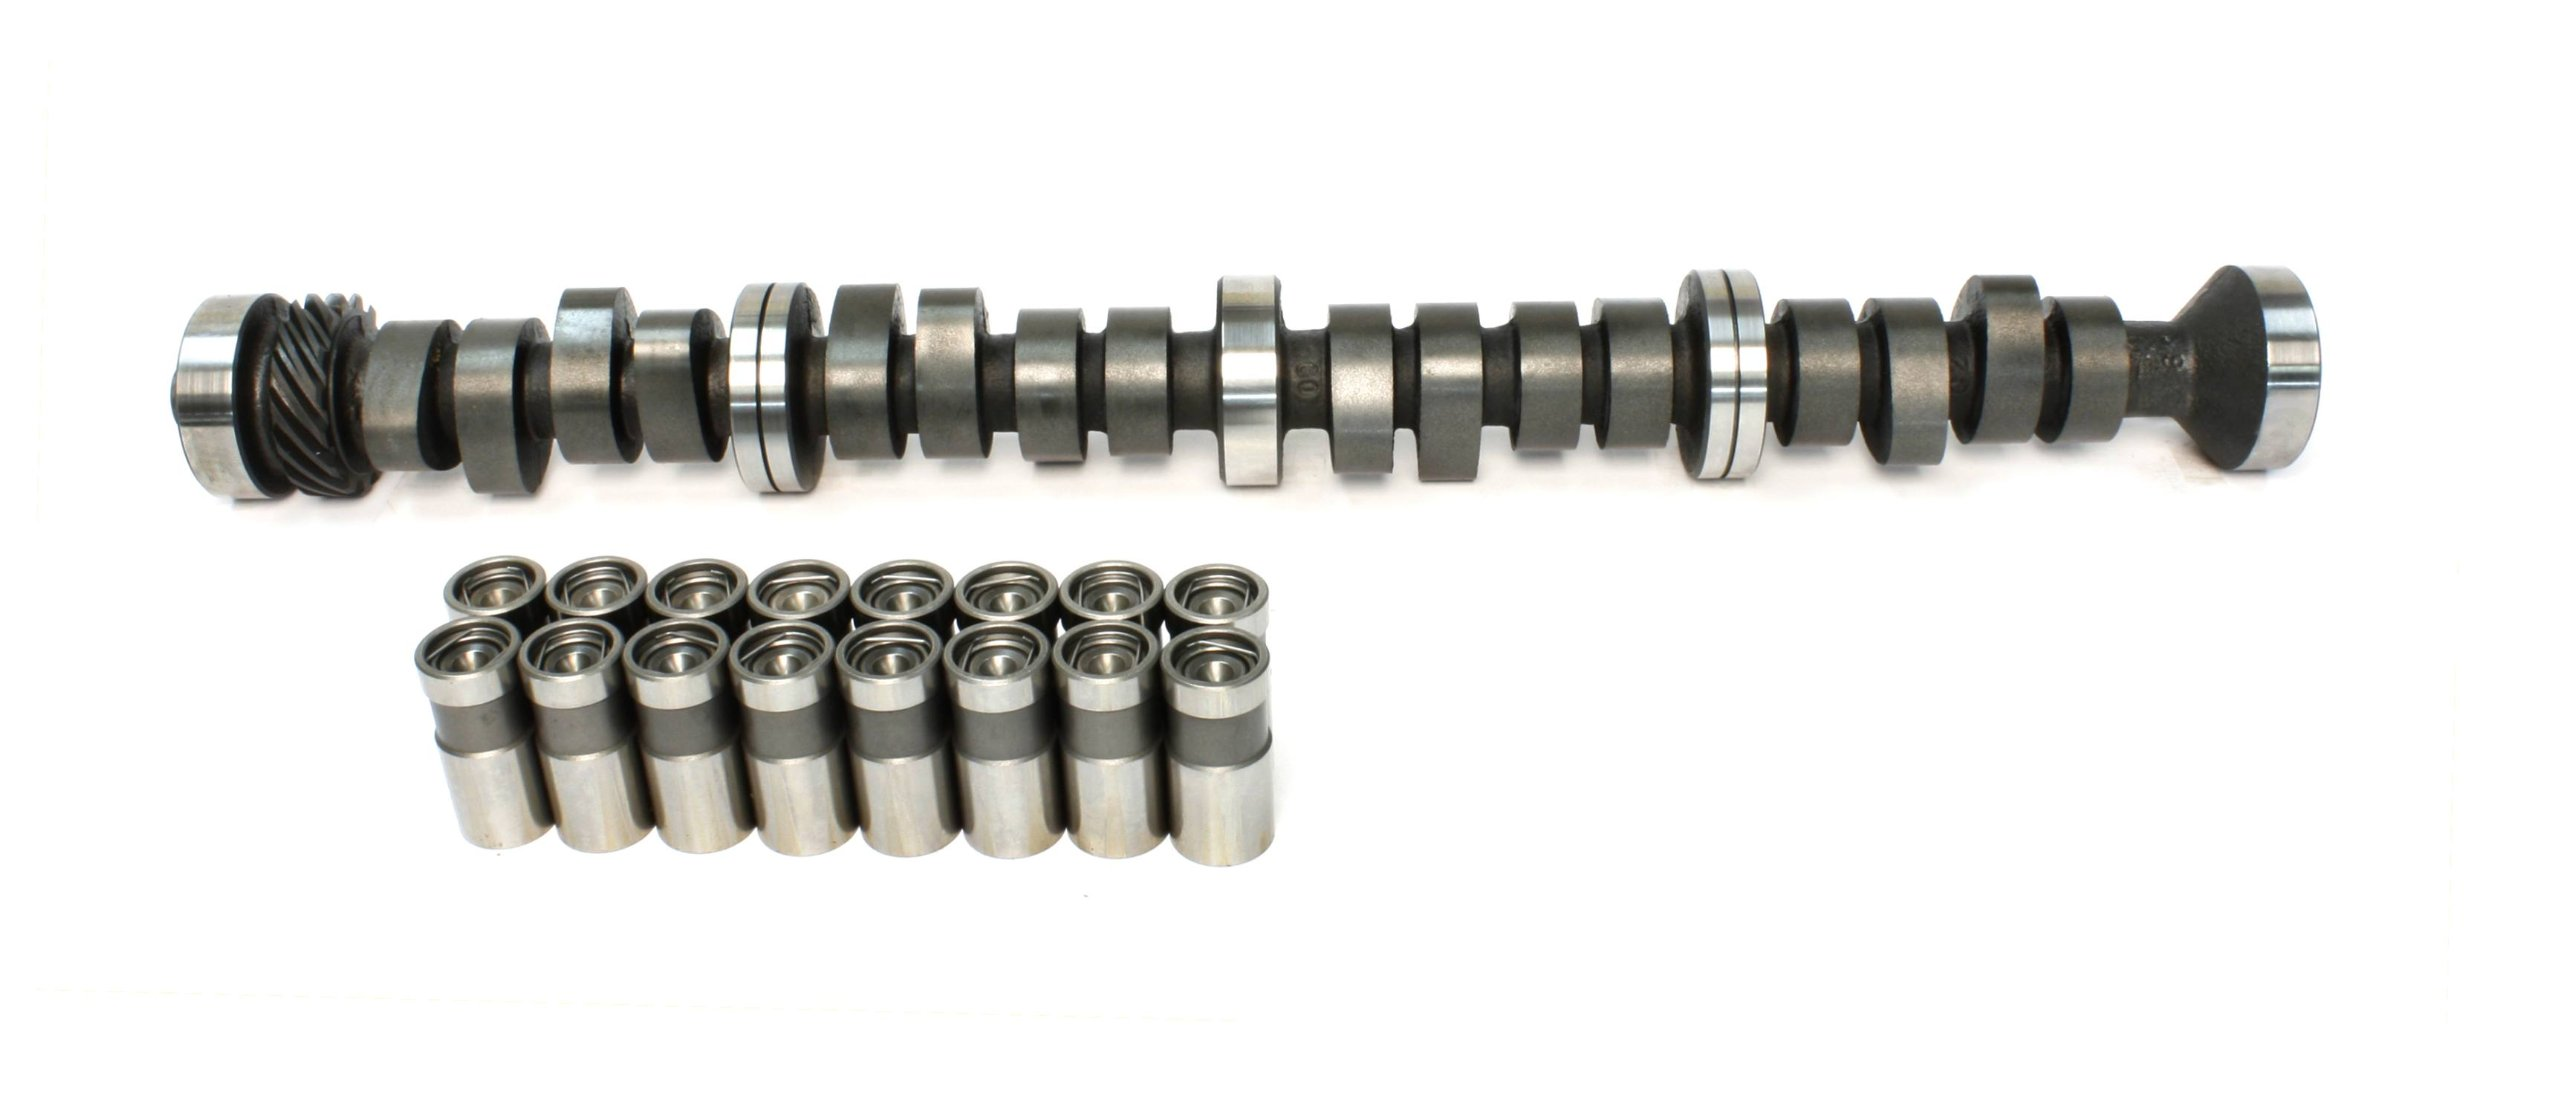 COMP Cams CL33-234-4 Xtreme Energy 212/218 Hydraulic Flat Cam and Lifter Kit for Ford 352-428 by Comp Cams (Image #1)